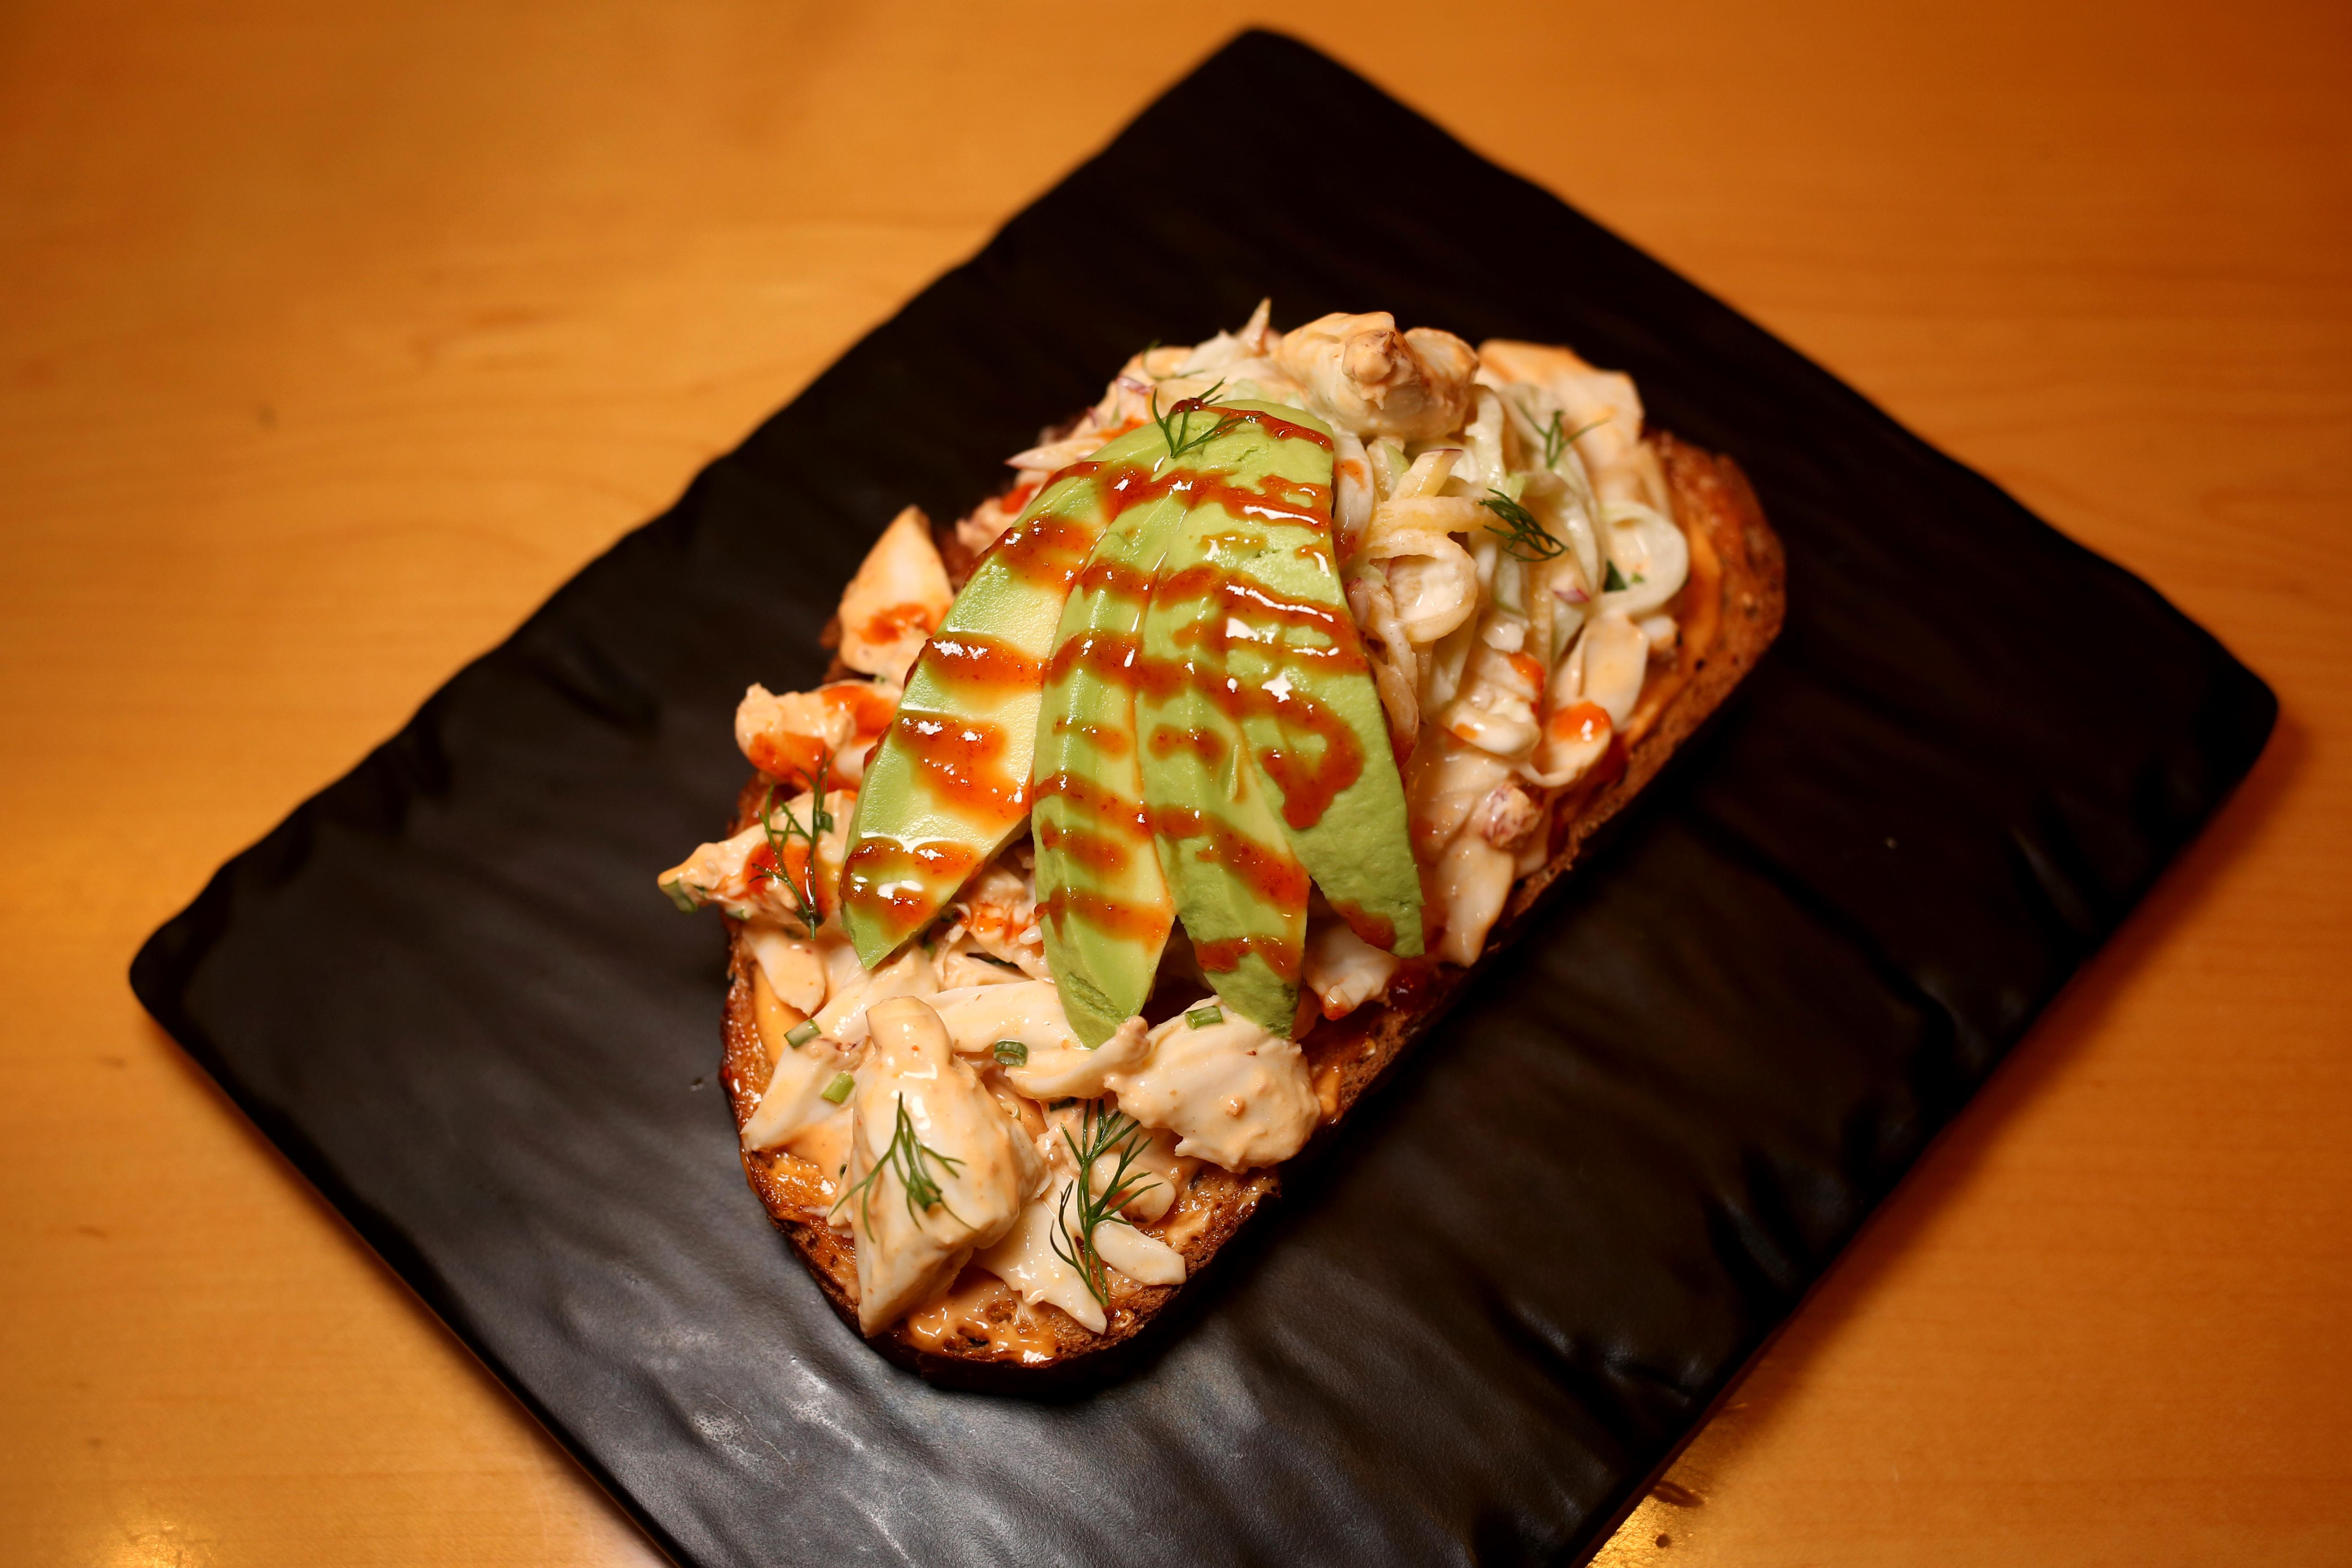 In the spirit of trying to embrace the East Coast lifestyle, we had to include the crab toast, which comes topped with avocado. The dish also comes with Sriracha, which is actually manufactured in southern California, and a peach-chayote slaw. Chayote has a stronghold in Los Angeles cuisine because of its ties to Latin-American cooking, so this take on avocado toast tastes like east-meets-west. (Amanda Andrade-Rhoades/DC Refined)